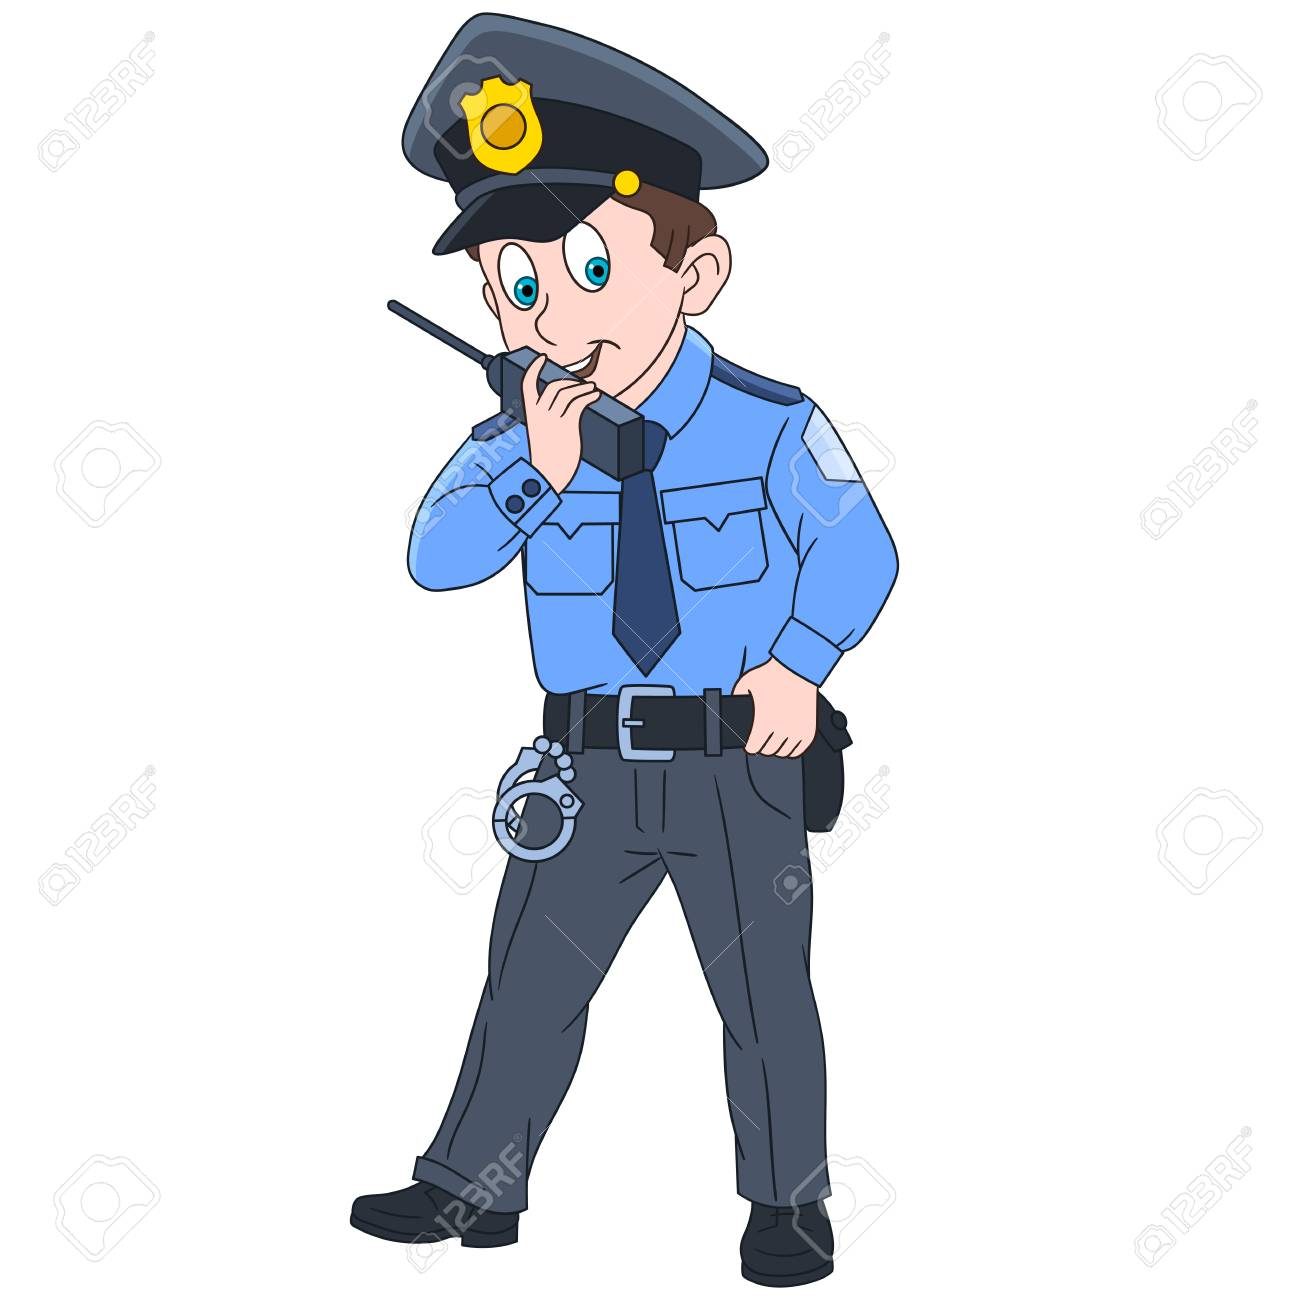 Cartoon police officer, policeman, isolated on white background.